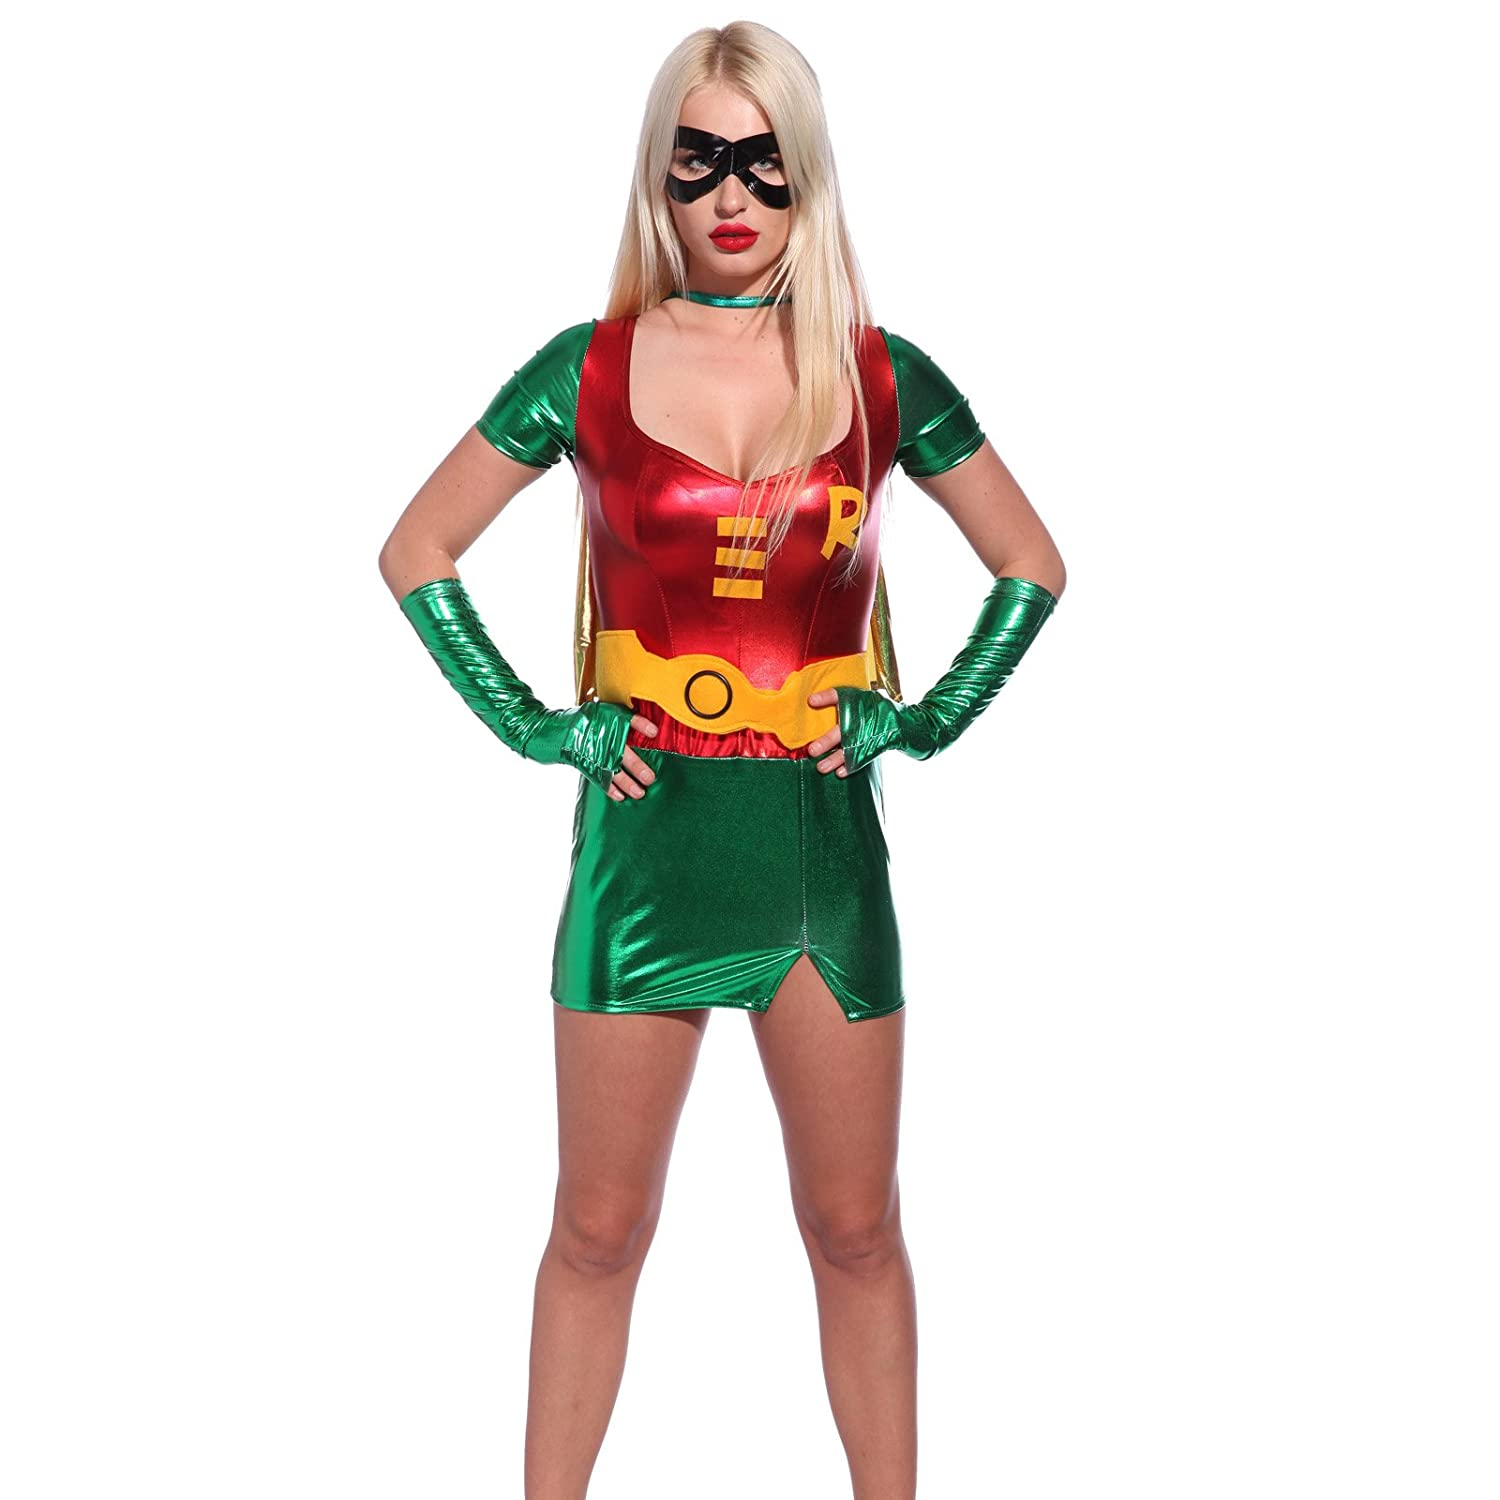 Sexy Super hero Superwoman Fancy Dress Role Play Outfit Comic Book Movie Costume